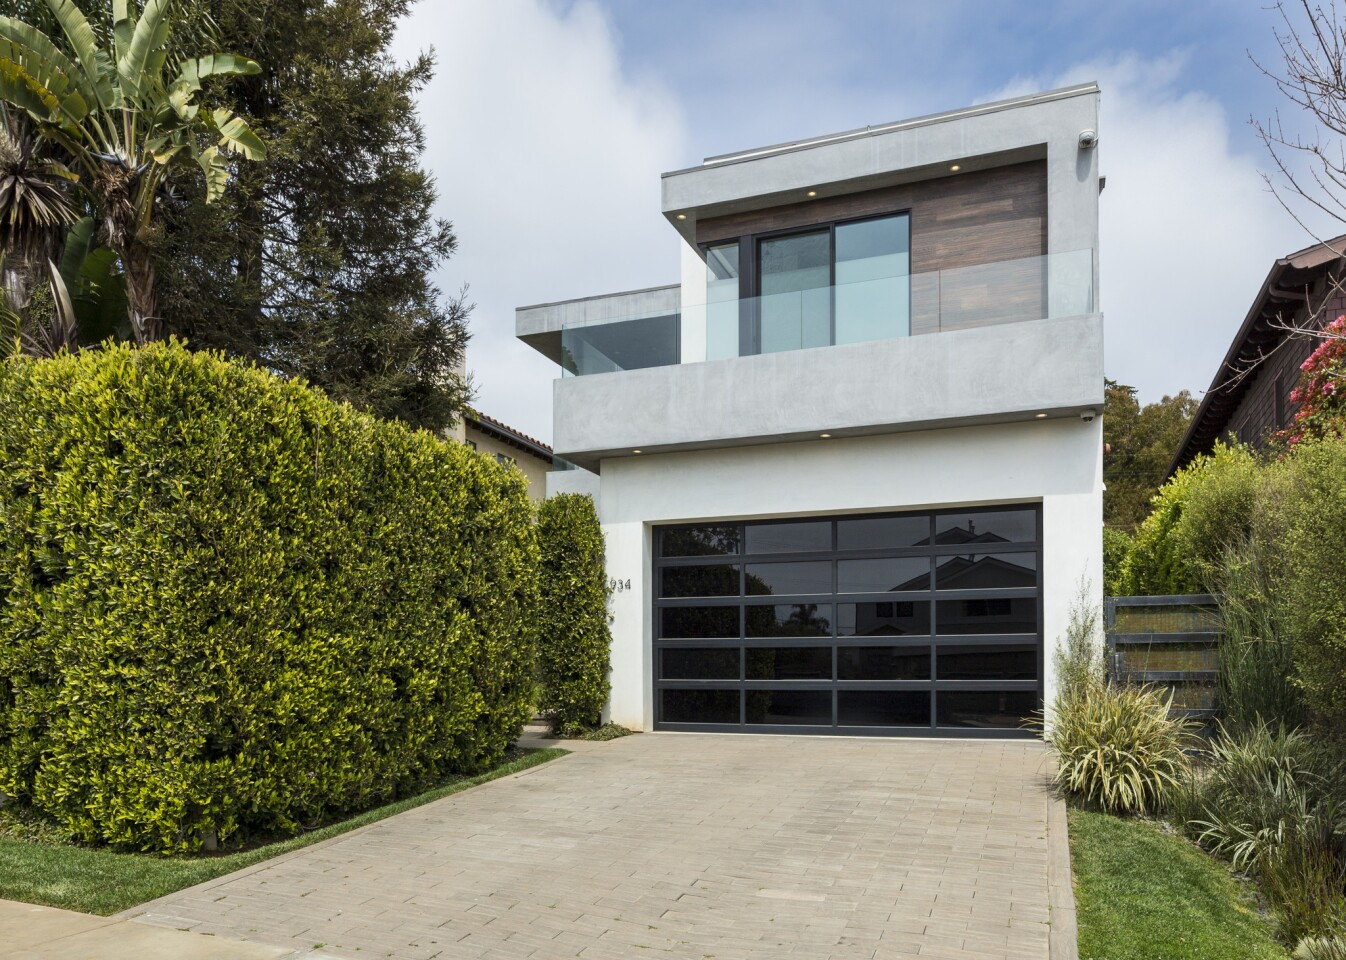 Tyra Banks' Pacific Palisades home | Hot Property